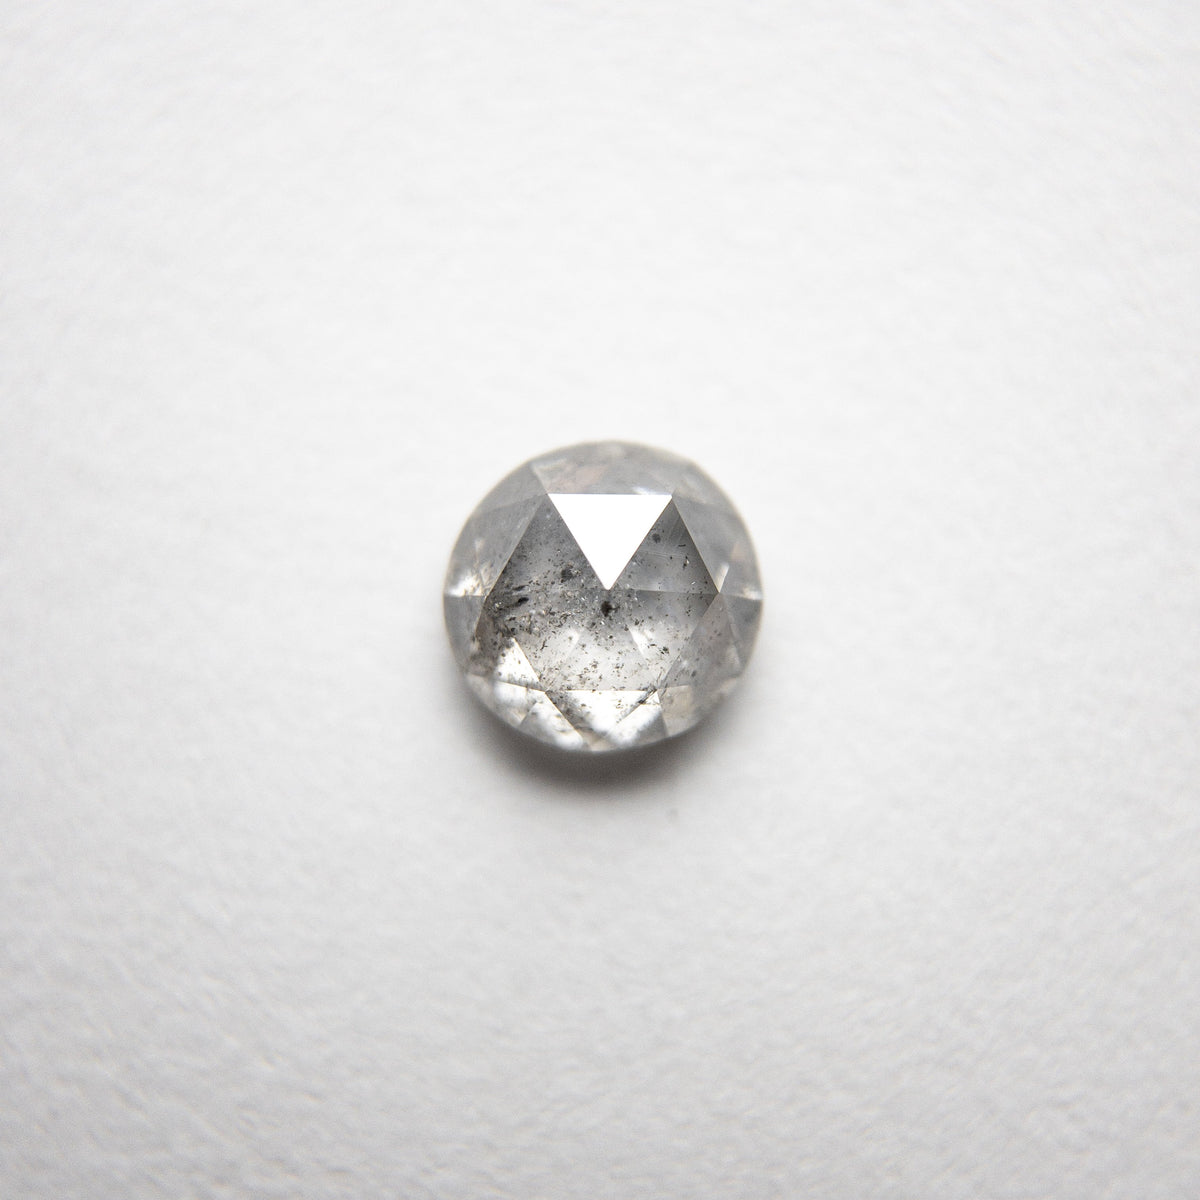 0.56ct 5.06x5.02x2.45mm Round Rosecut 18227-06